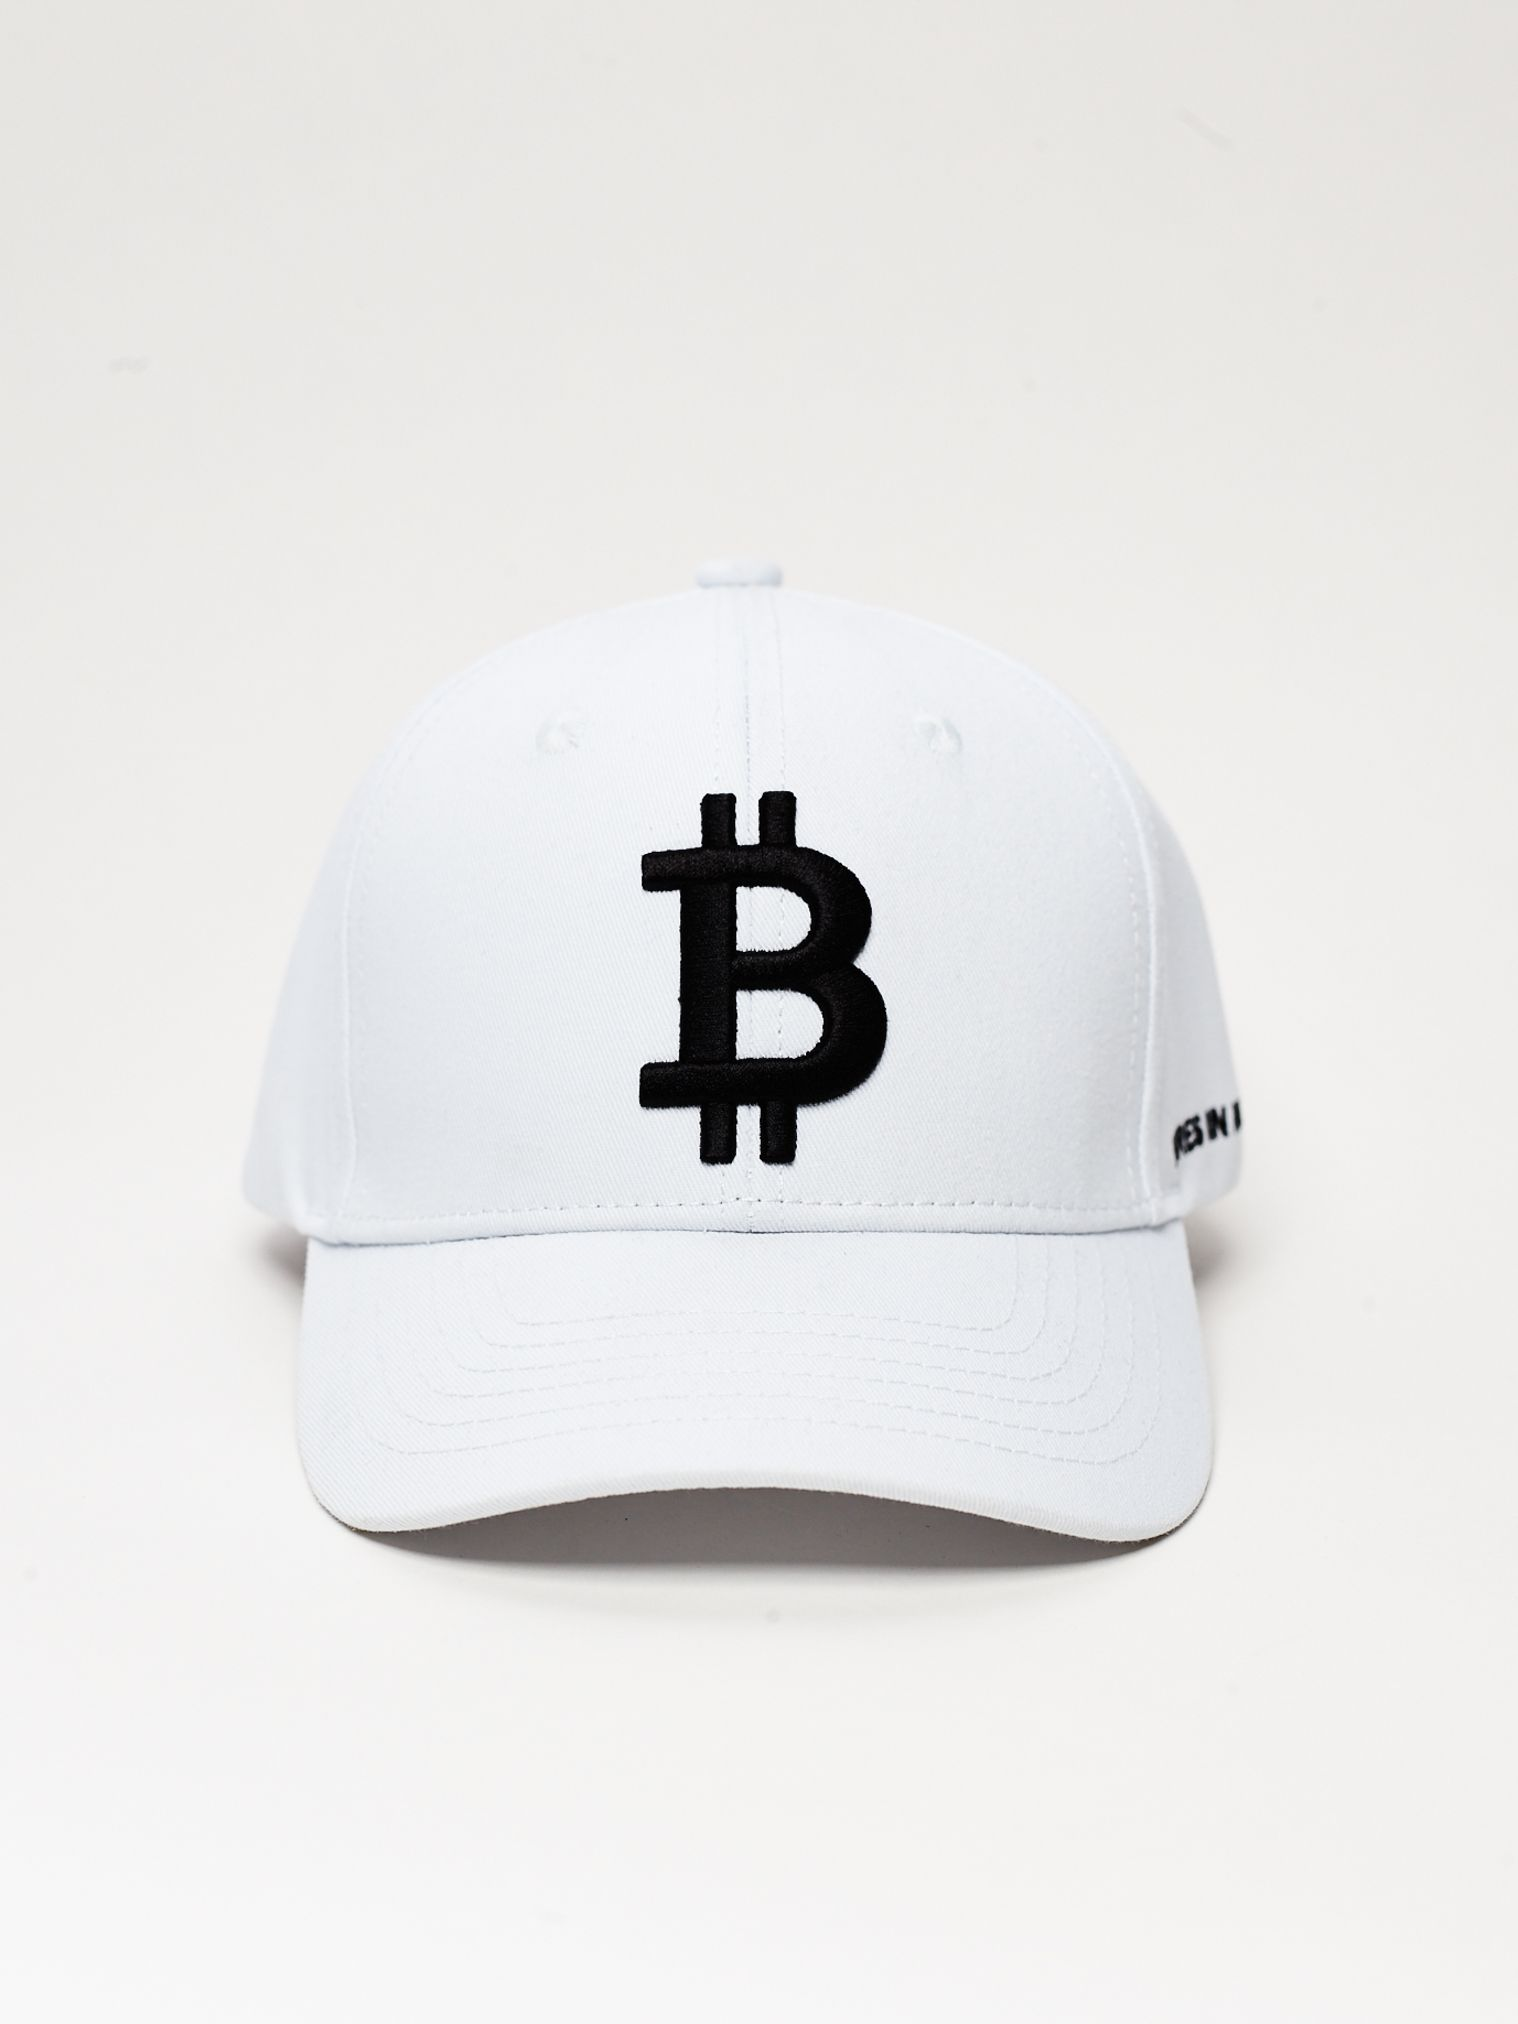 Designer Bitcoin Hat In White By Merch Ix Crypto Hat Bitcoin Hats Cryptocurrency Caps Classic Accessory White Hat Cap Collection